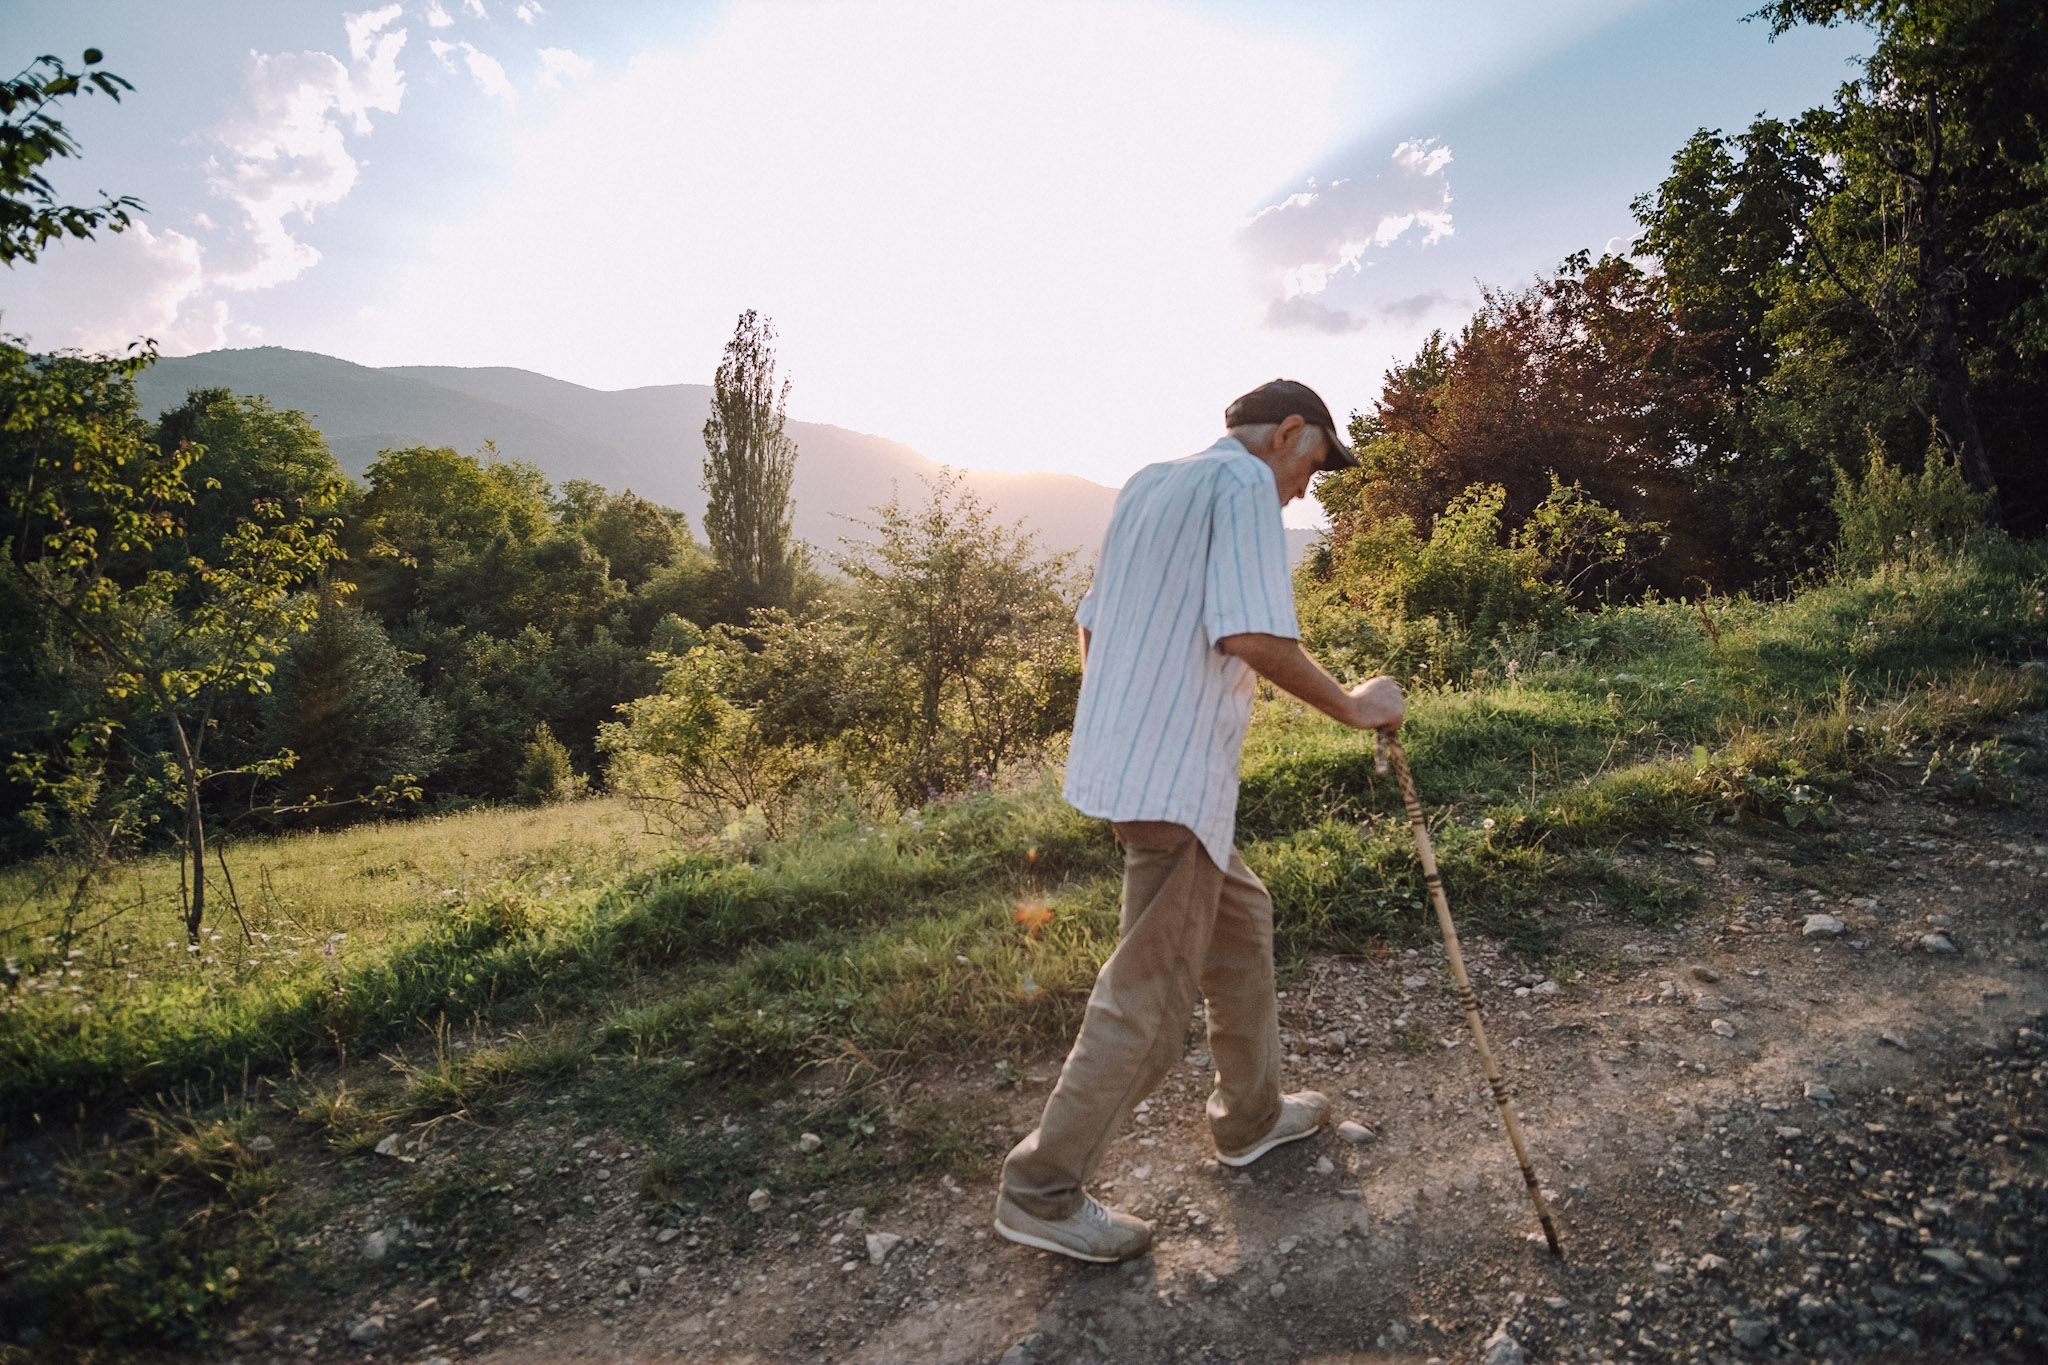 Paata is shown walking a path up a hill using a walking stick in this photo by Dimitri Mais